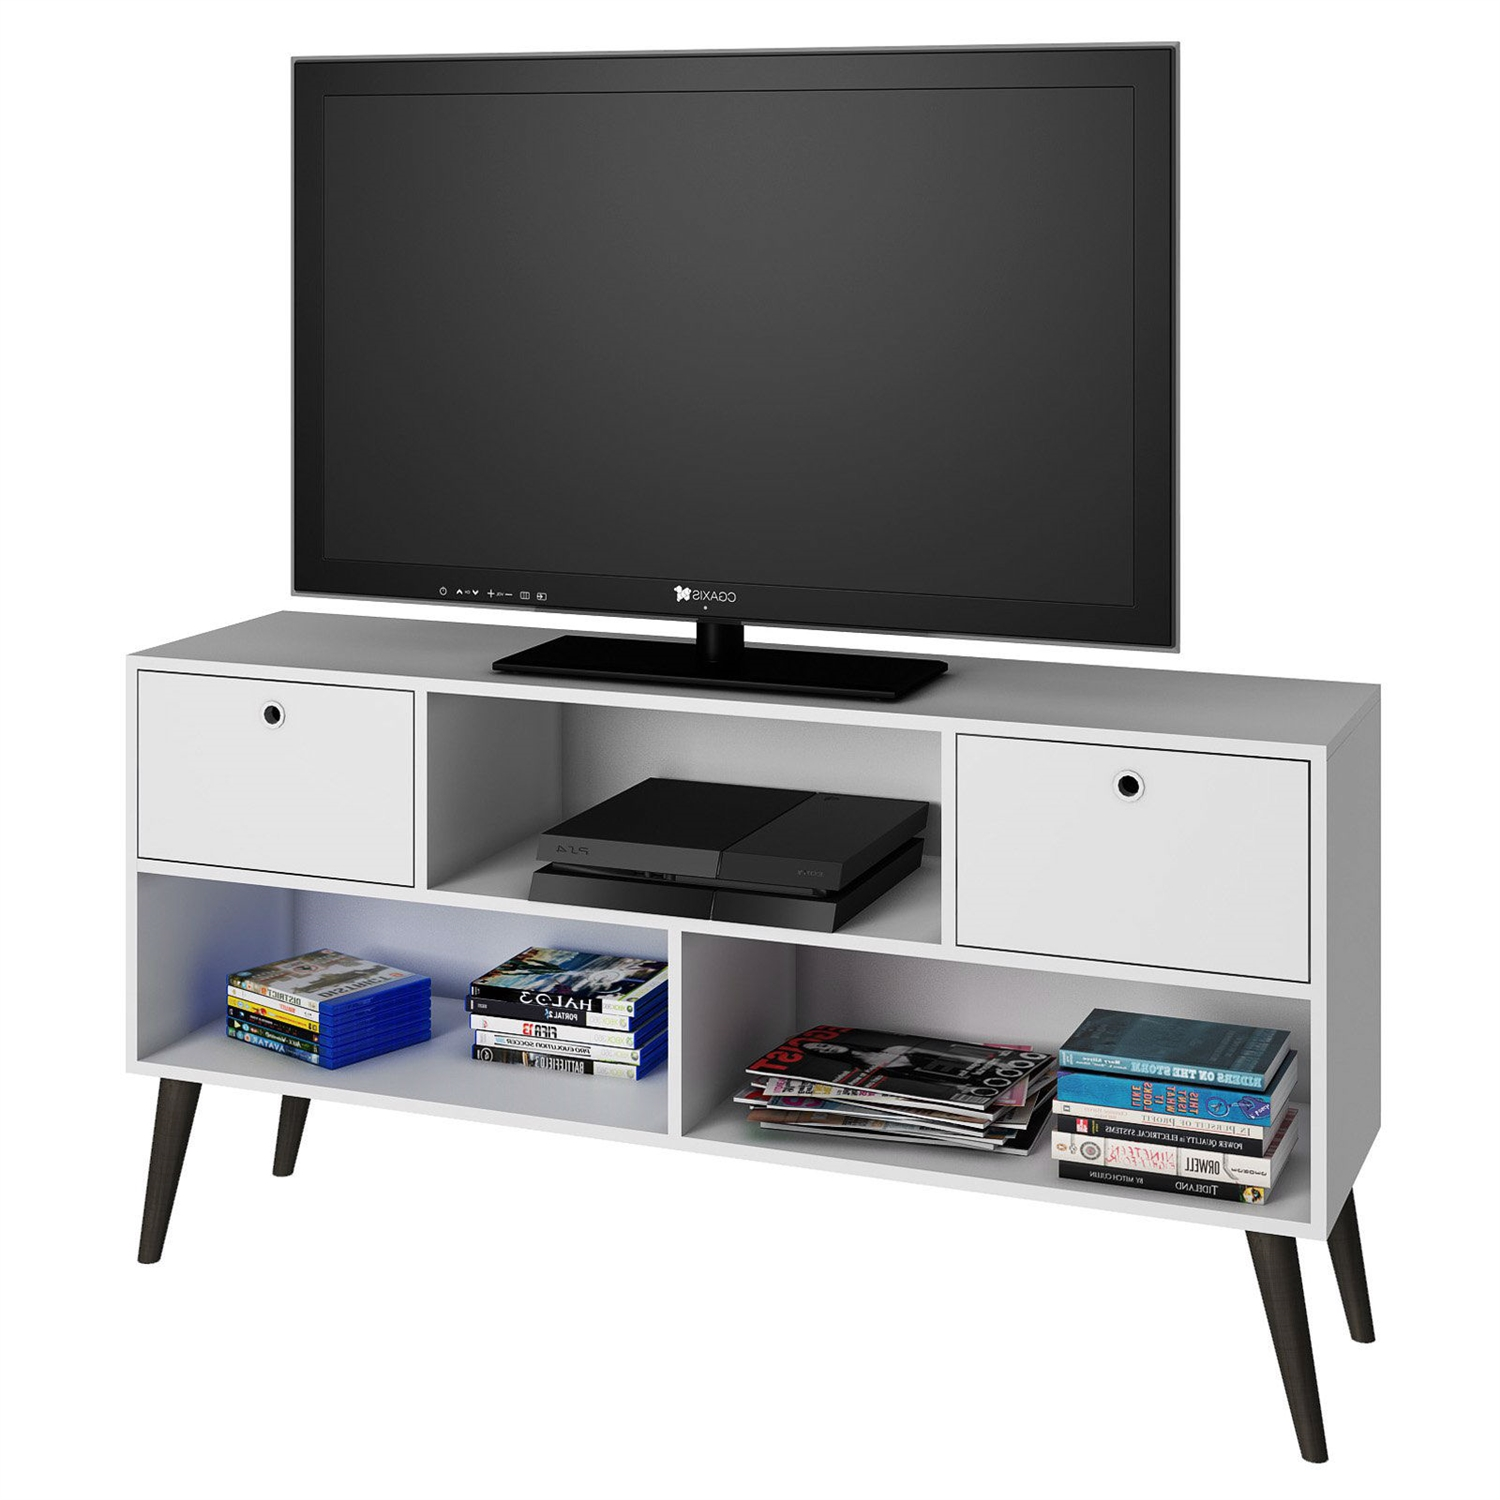 mid century modern entertainment center tv stand in white grey wood finish - Entertainment Centers Tv Stands